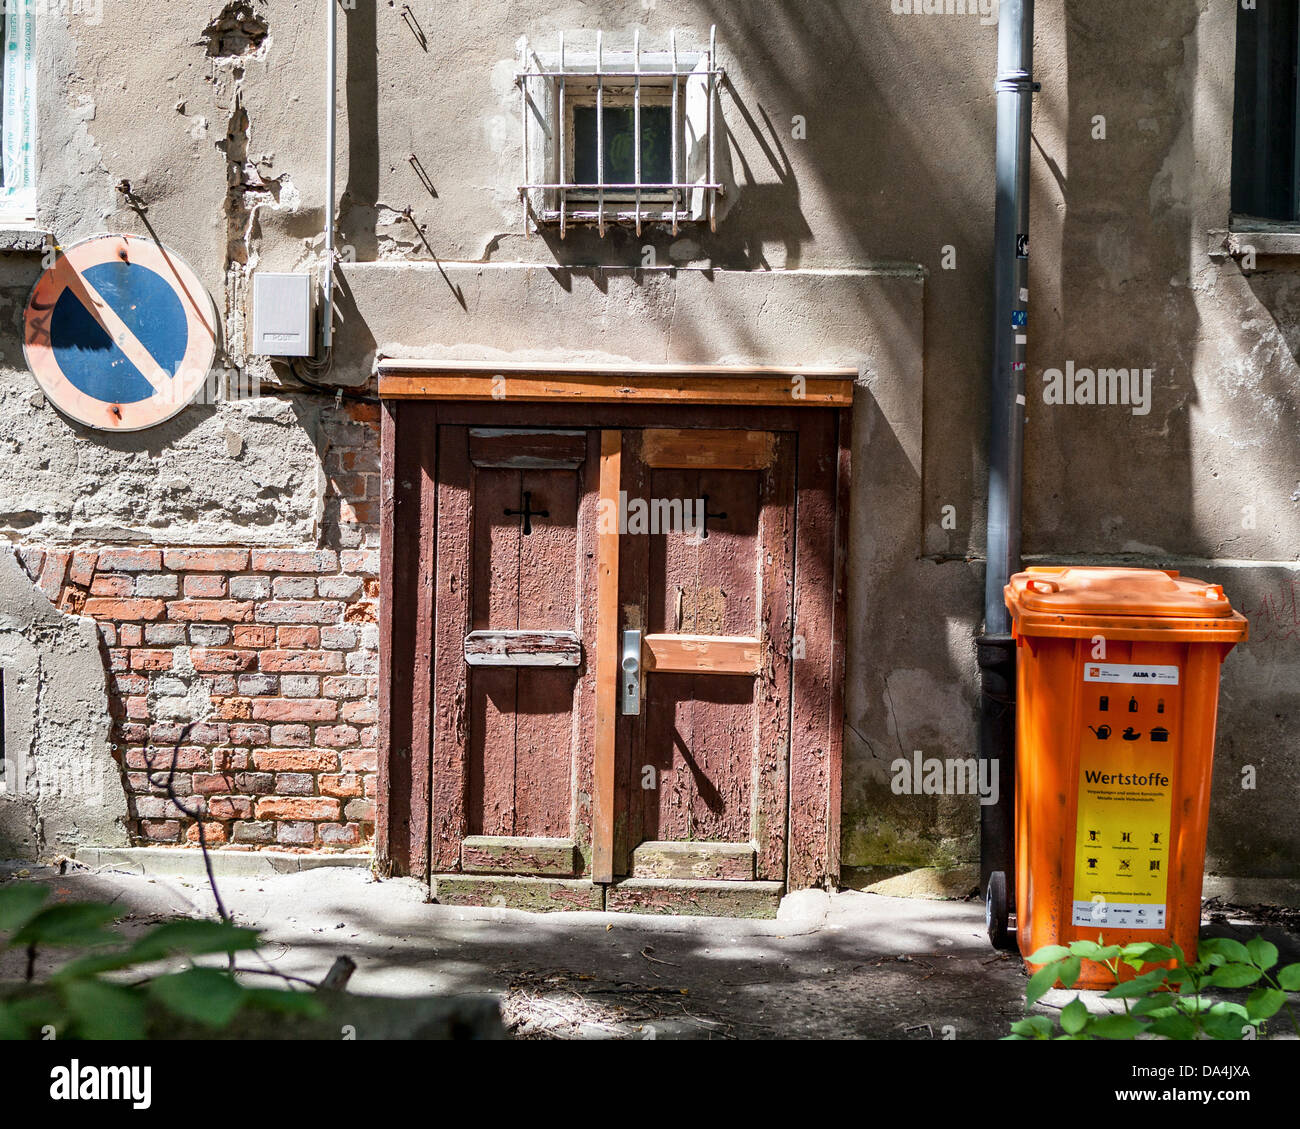 Urban decay - No entry sign, brick wall, dilapidated door and trash bin in an inner courtyard of aBuilding, Mitte, - Stock Image